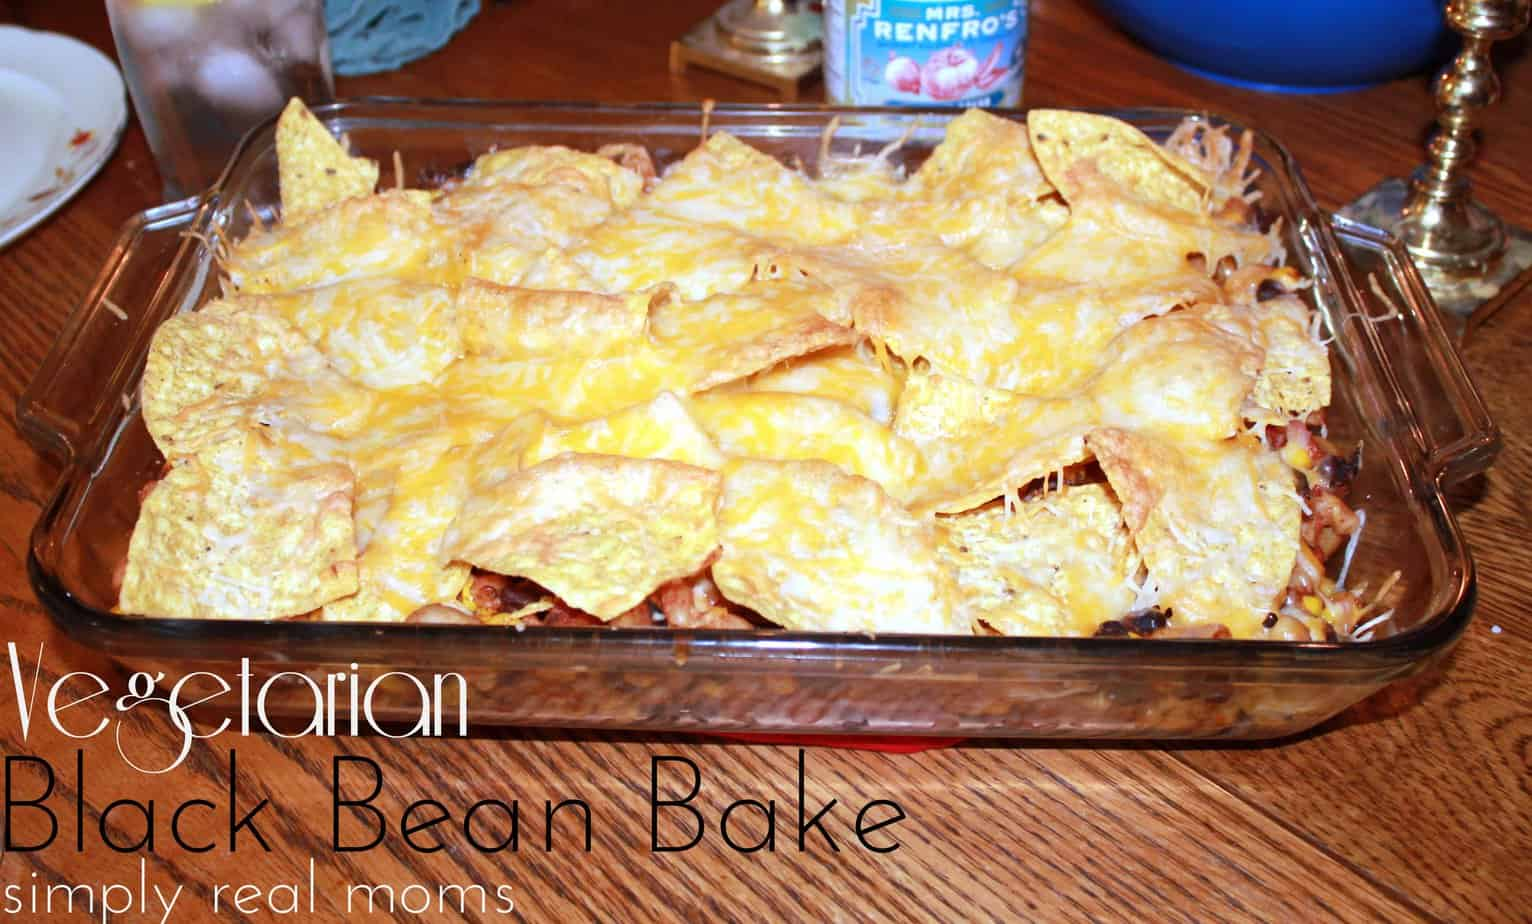 Vegetarian Black Bean Bake 2